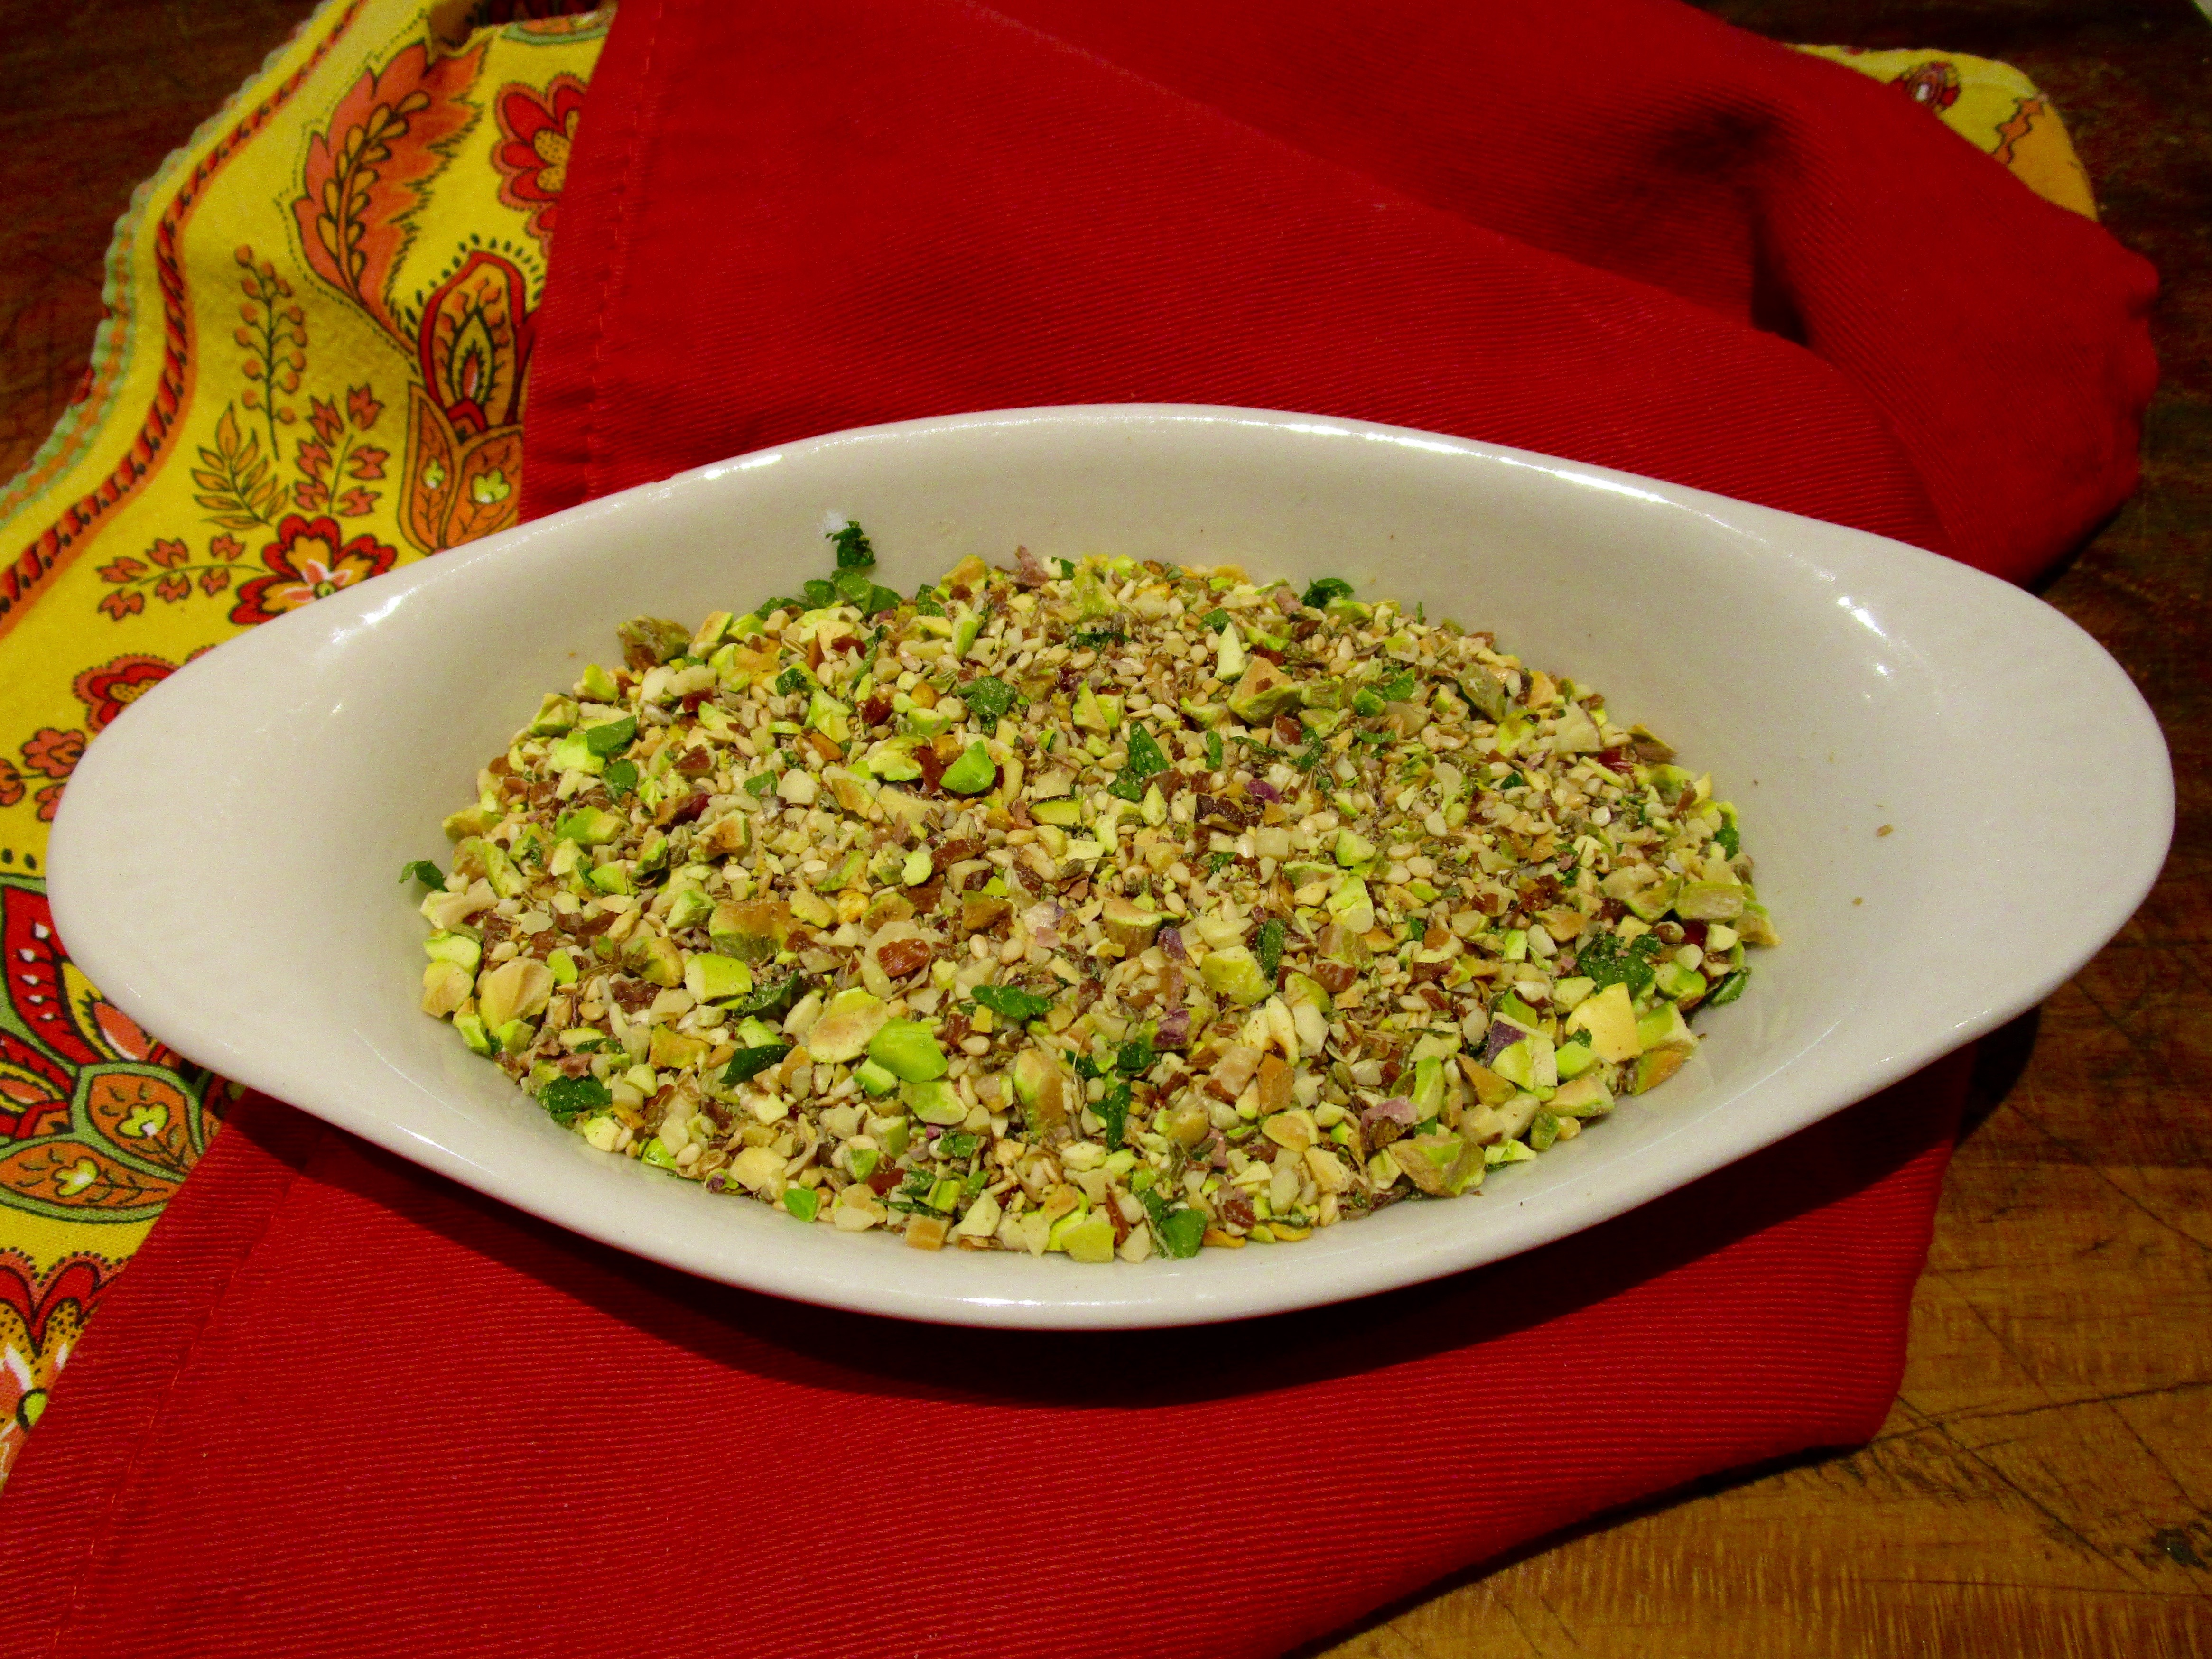 Pistachio Dukka, a traditional Egyptian combination of nuts, seeds and spices, is served with rustic bread and olive oil.